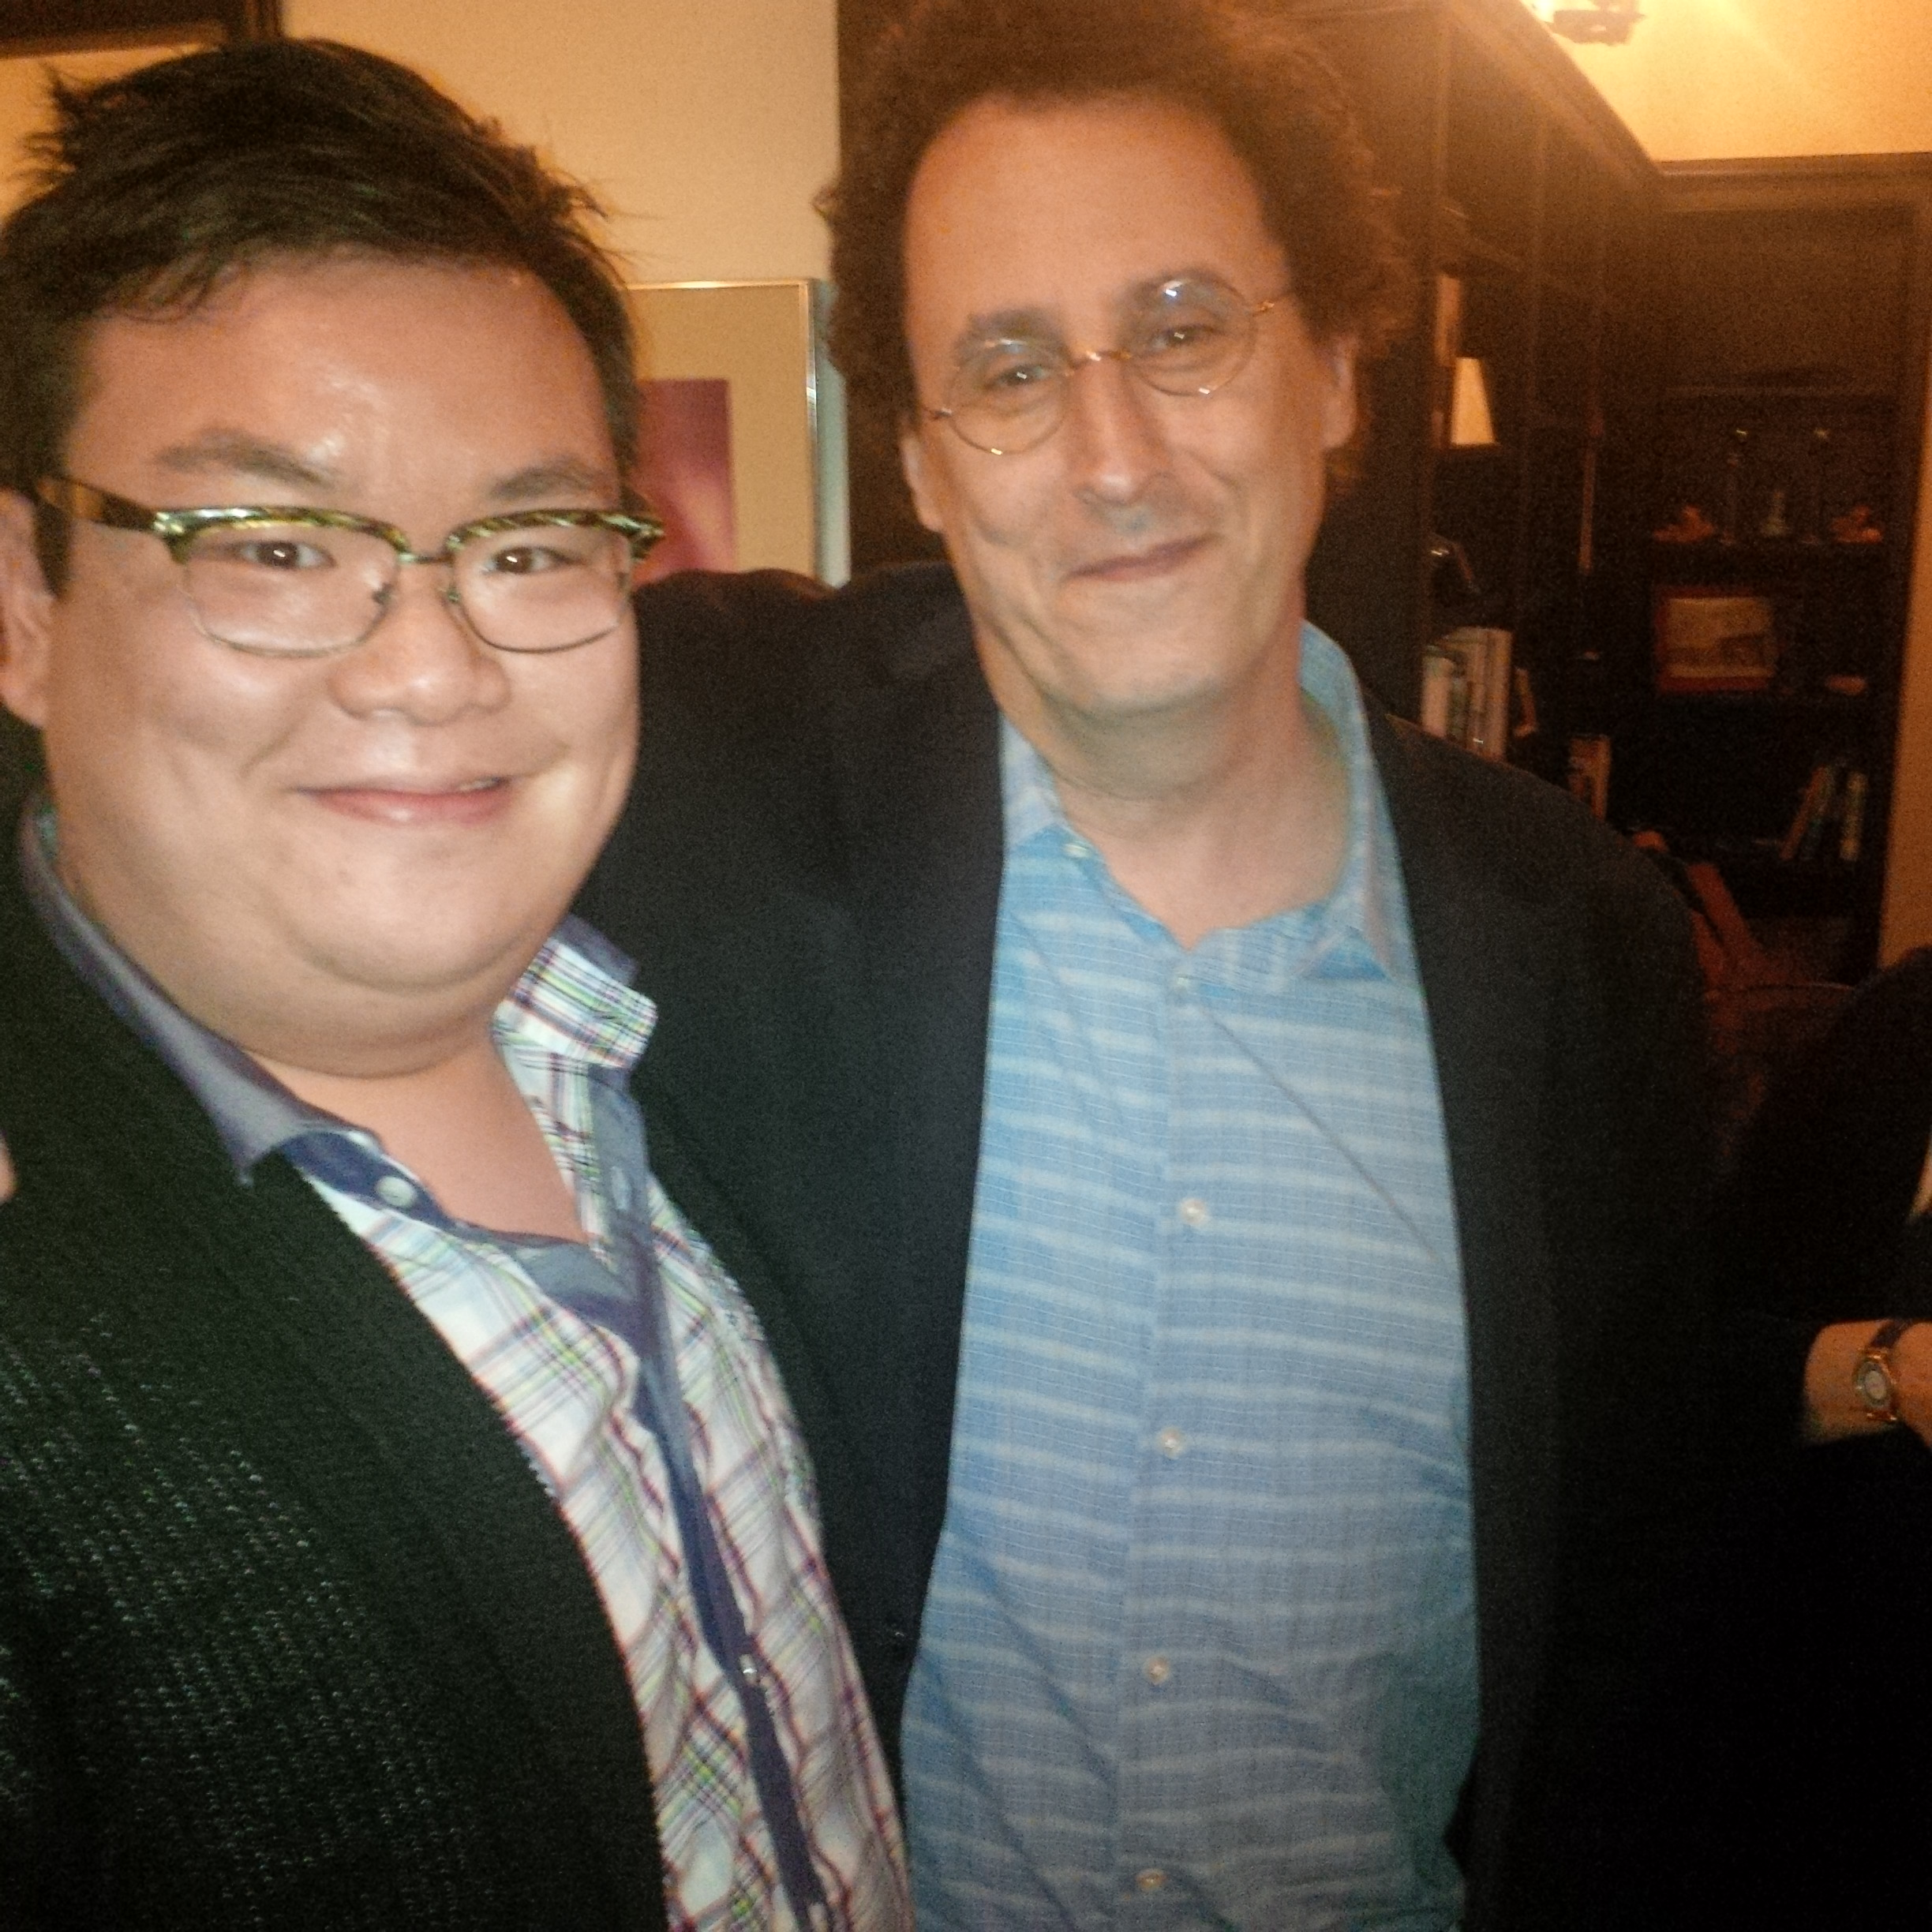 With Playwright Tony Kushner after Passover Dinner at Berkeley Rep. (2014)